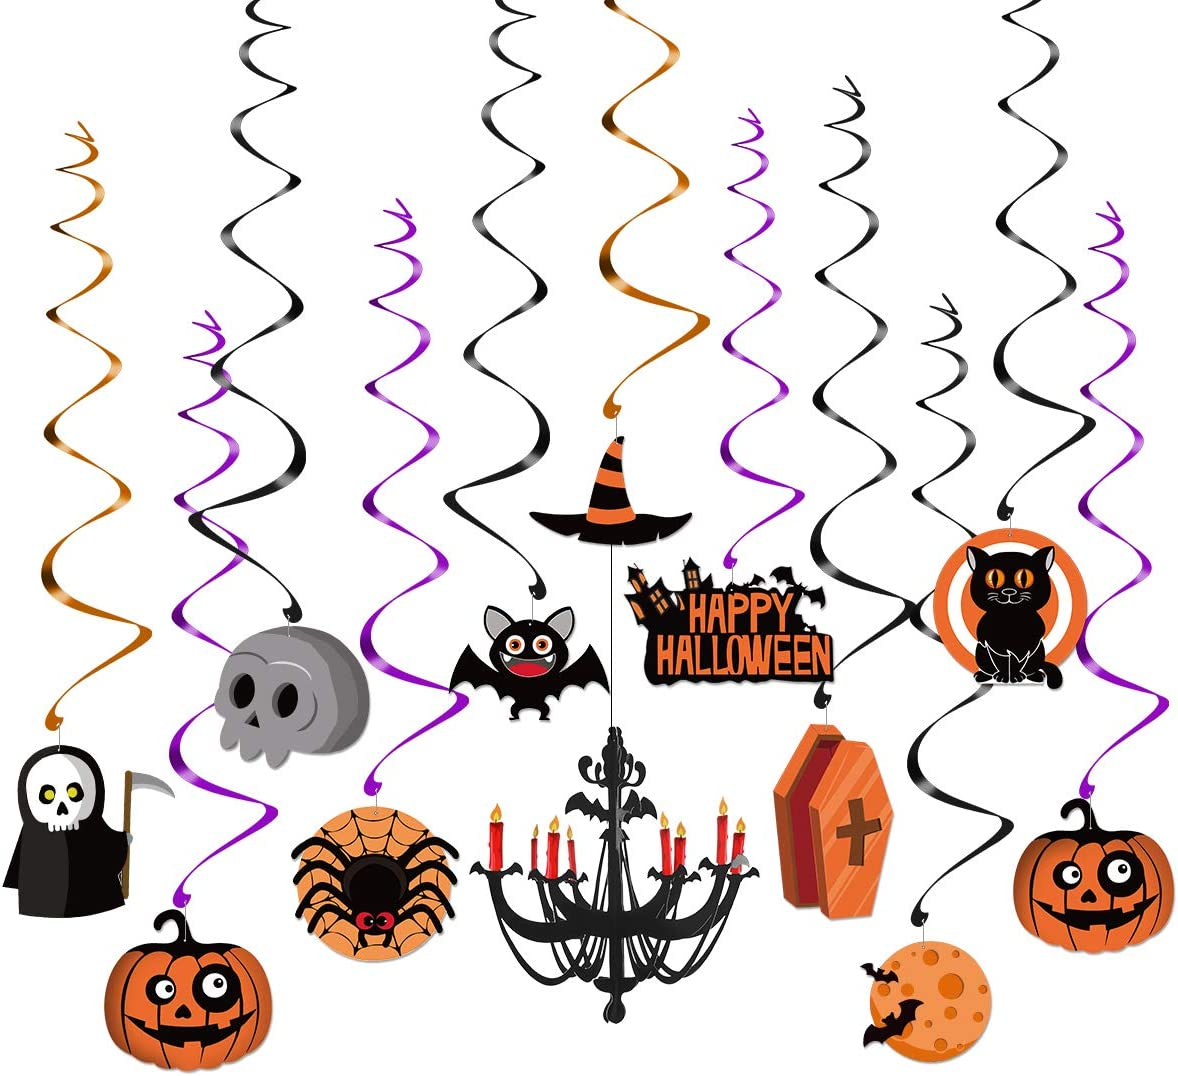 Unomor Halloween Decorations Indoor Hanging Swirls for Haunted House Decor Ceiling Swirl Decoration Included Bats  Spider  Ghost  Pumpkin  3D Chandelier  30 Piece